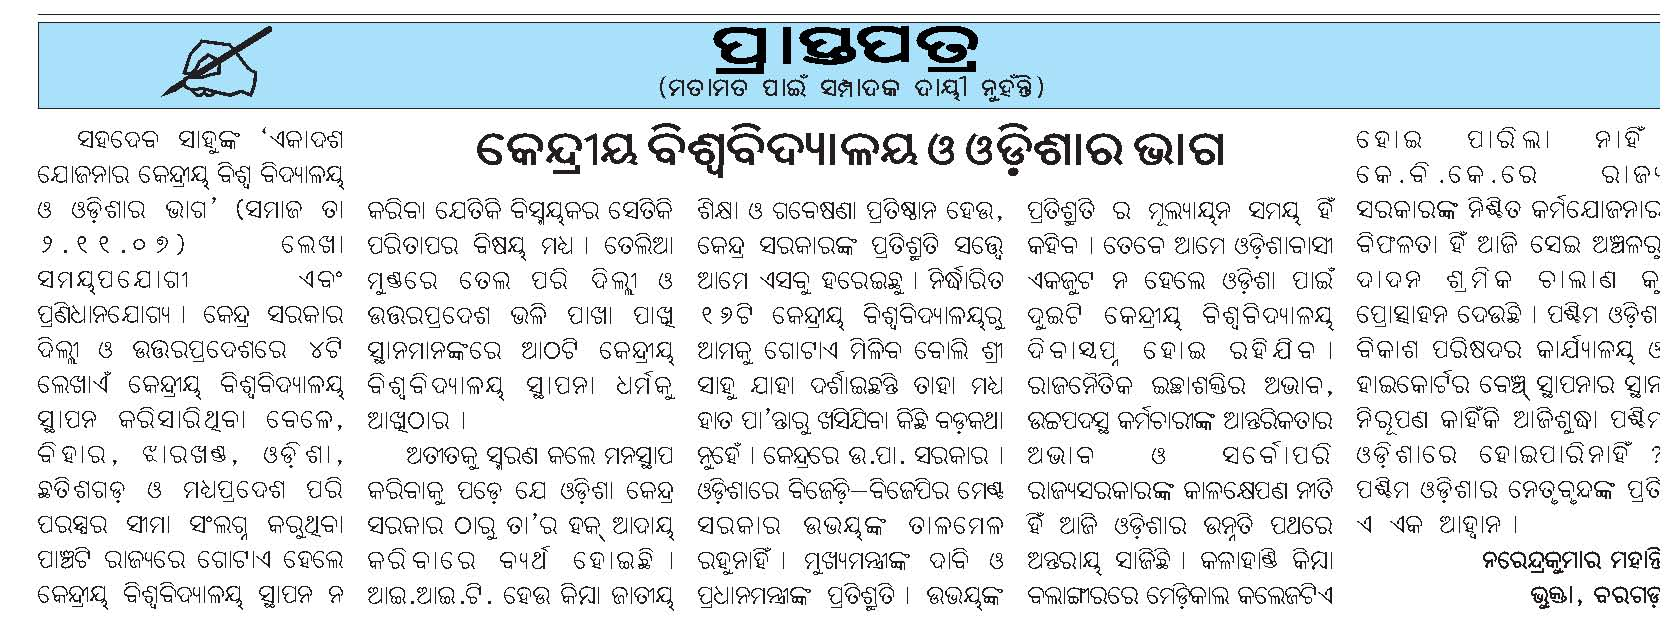 Odisha hrd ravenshaw university cuttack samaja letter to the editor on two central universities for orissa spiritdancerdesigns Gallery